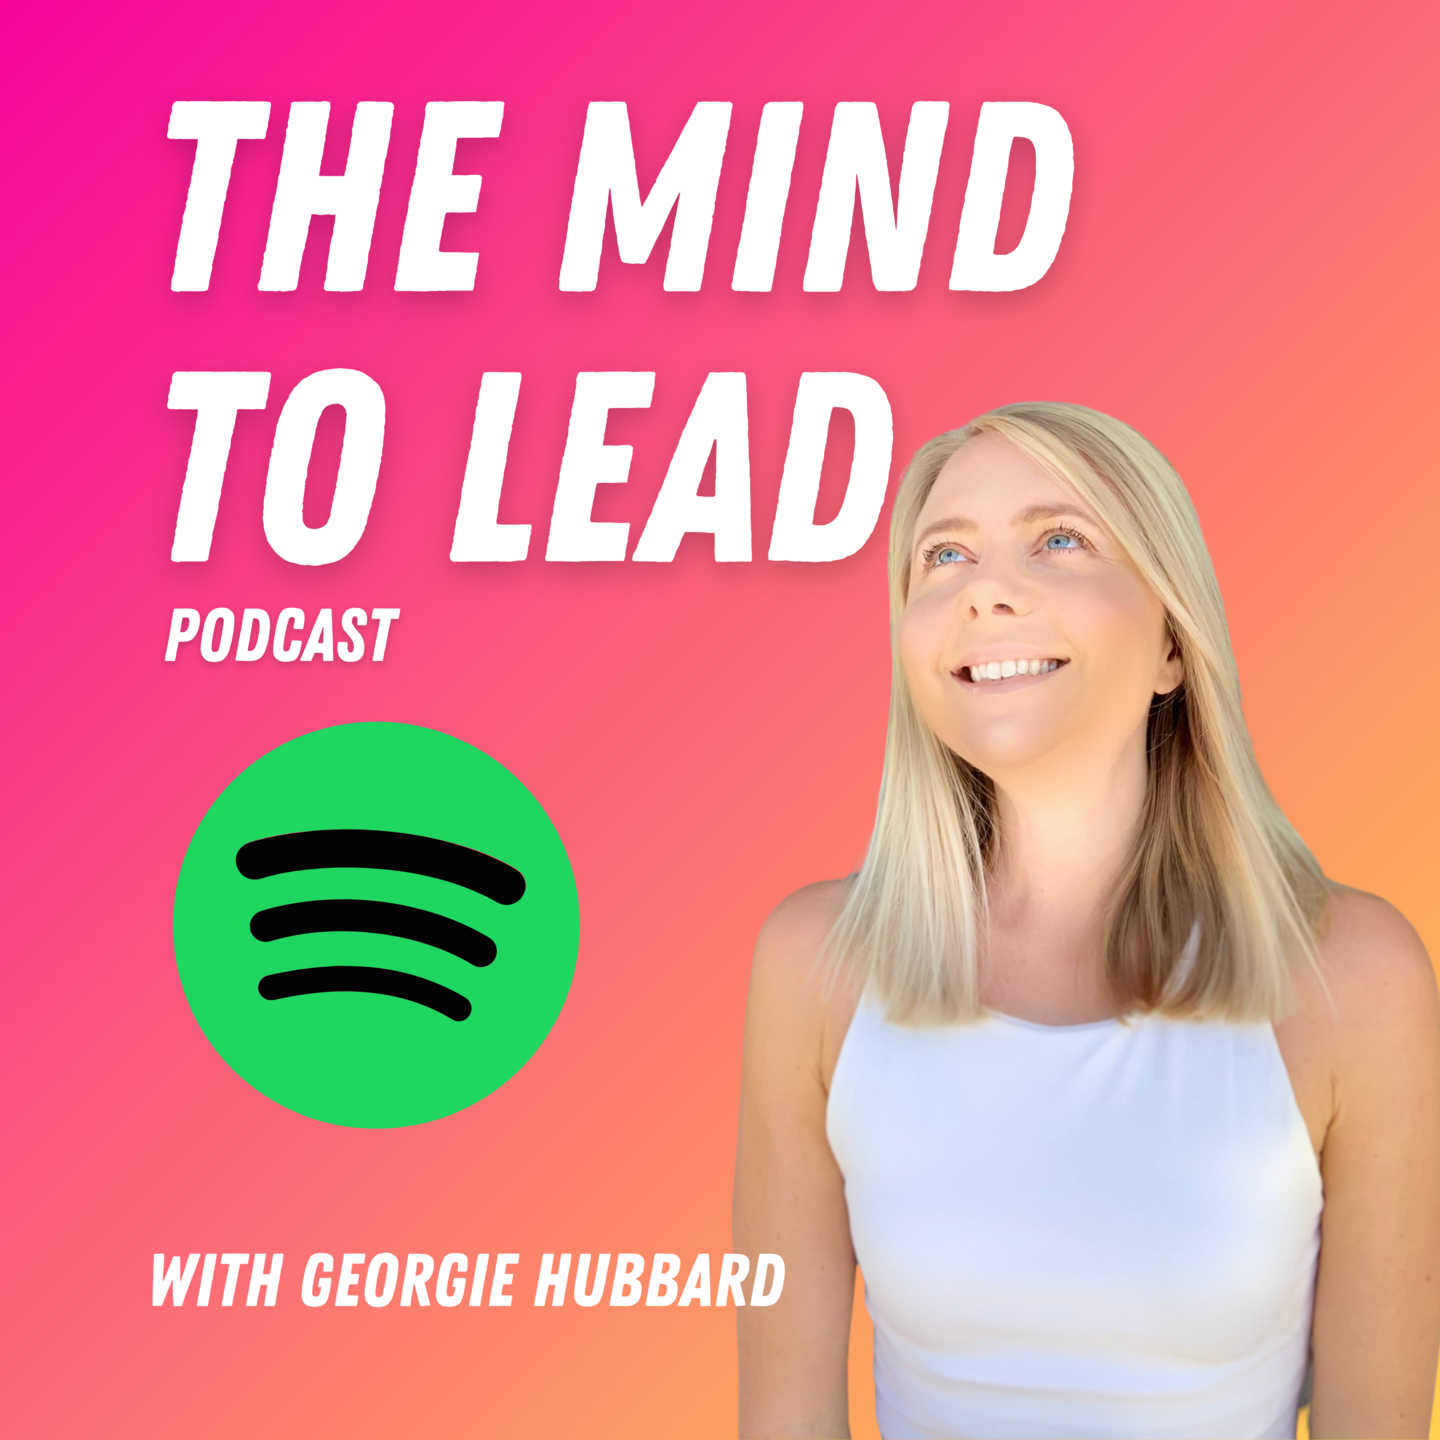 The Mind to Lead Podcast Spotify